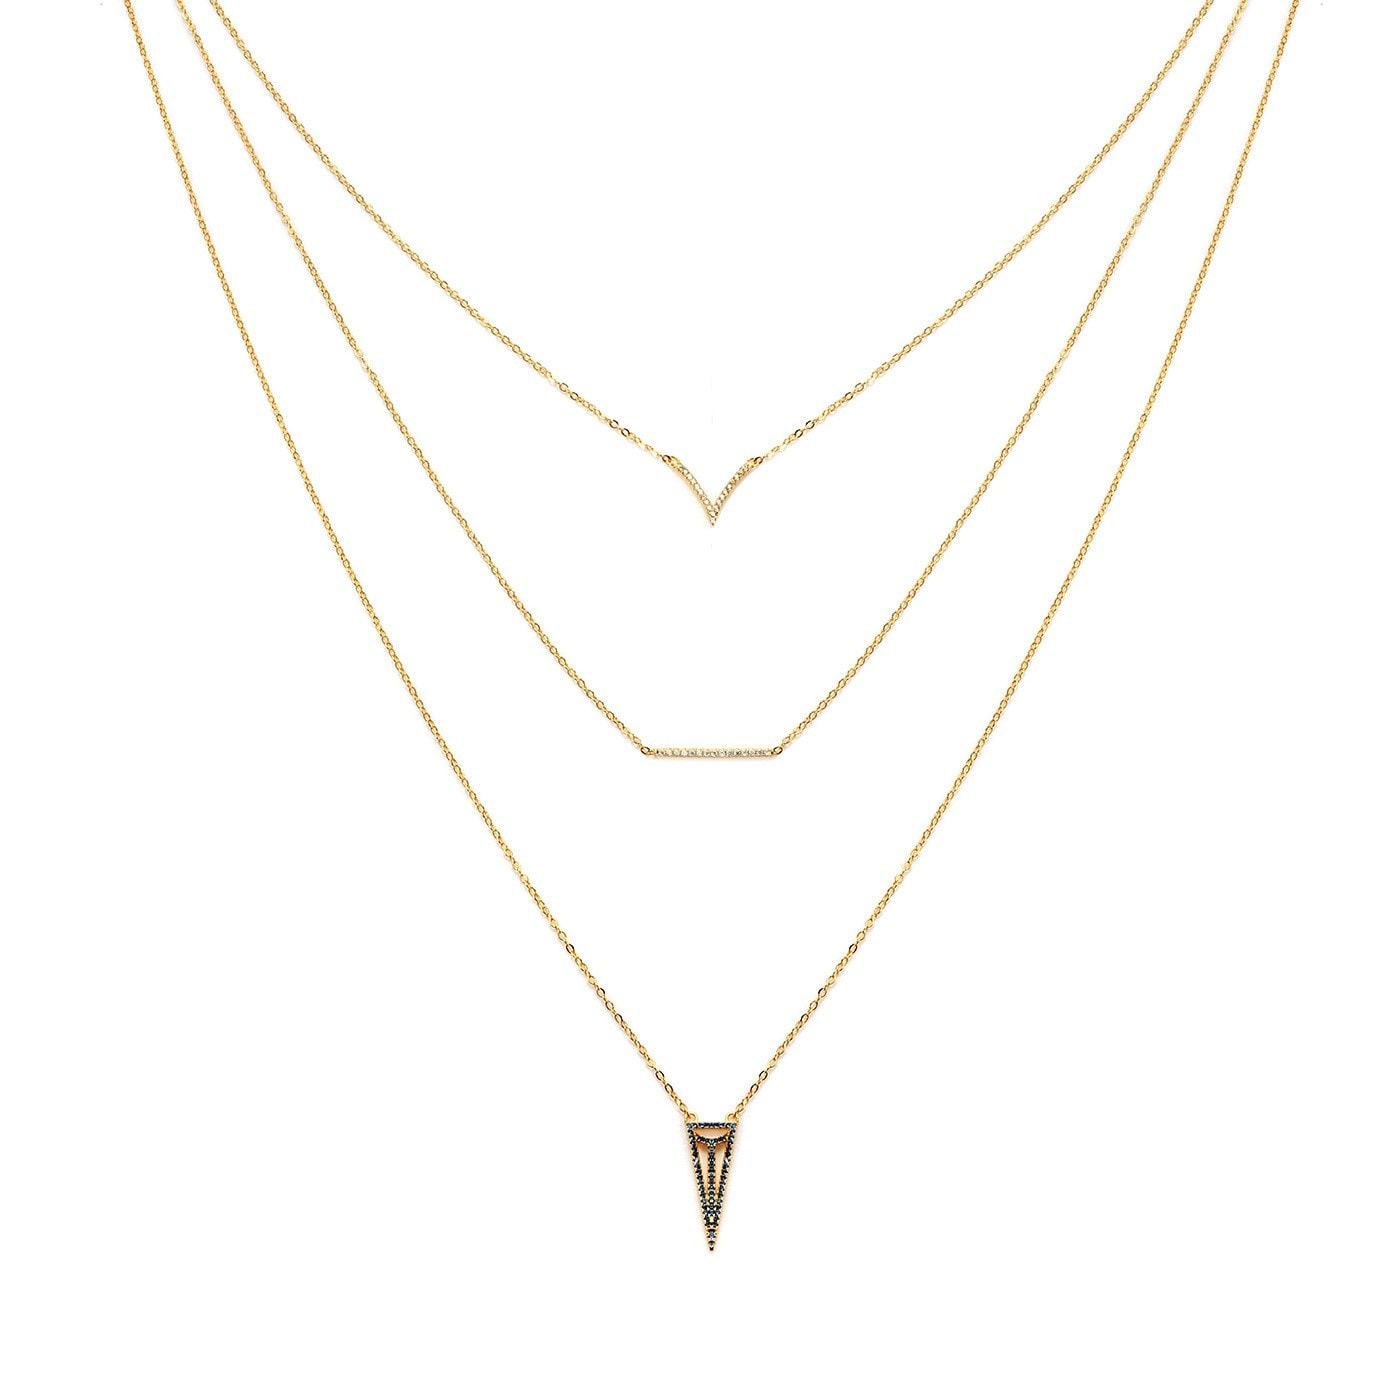 Opulent Charms Elite Layered Necklace-Blinglane